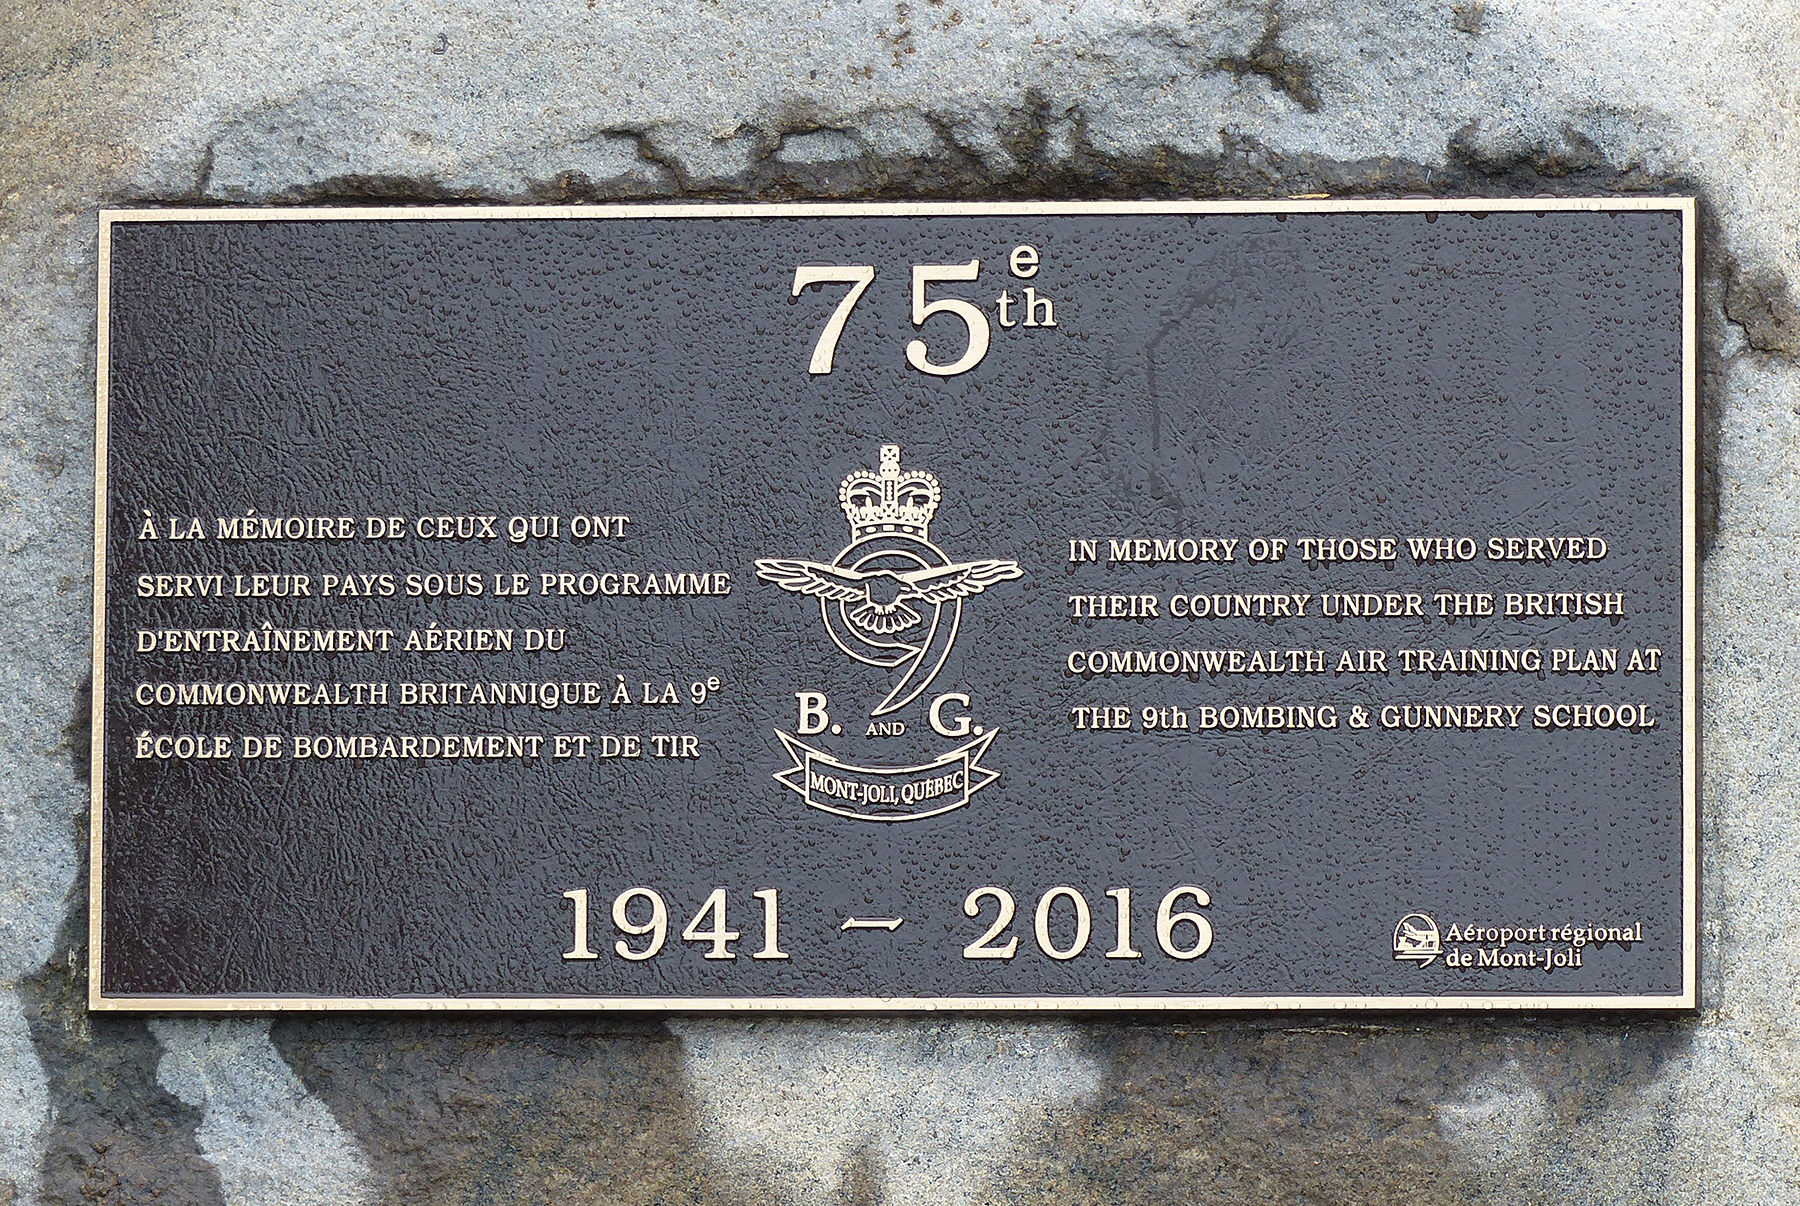 "The bronze plaque marking the 75th anniversary of the standing up of No. 9 Bombing and Gunnery School on RCAF Station Mont-Joli, Québec, and reading, ""IN MEMORY OF THOSE WHO SERVED THEIR COUNTRY UNDER THE BRITISH COMMONWEALTH AIR TRAINING PLAN AT THE 9th BOMBING & GUNNERY SCHOOL"", was unveiled just outside the entrance to Mont-Joli Regional Airport on August 22, 2016. PHOTO: Hélène Lavigne"